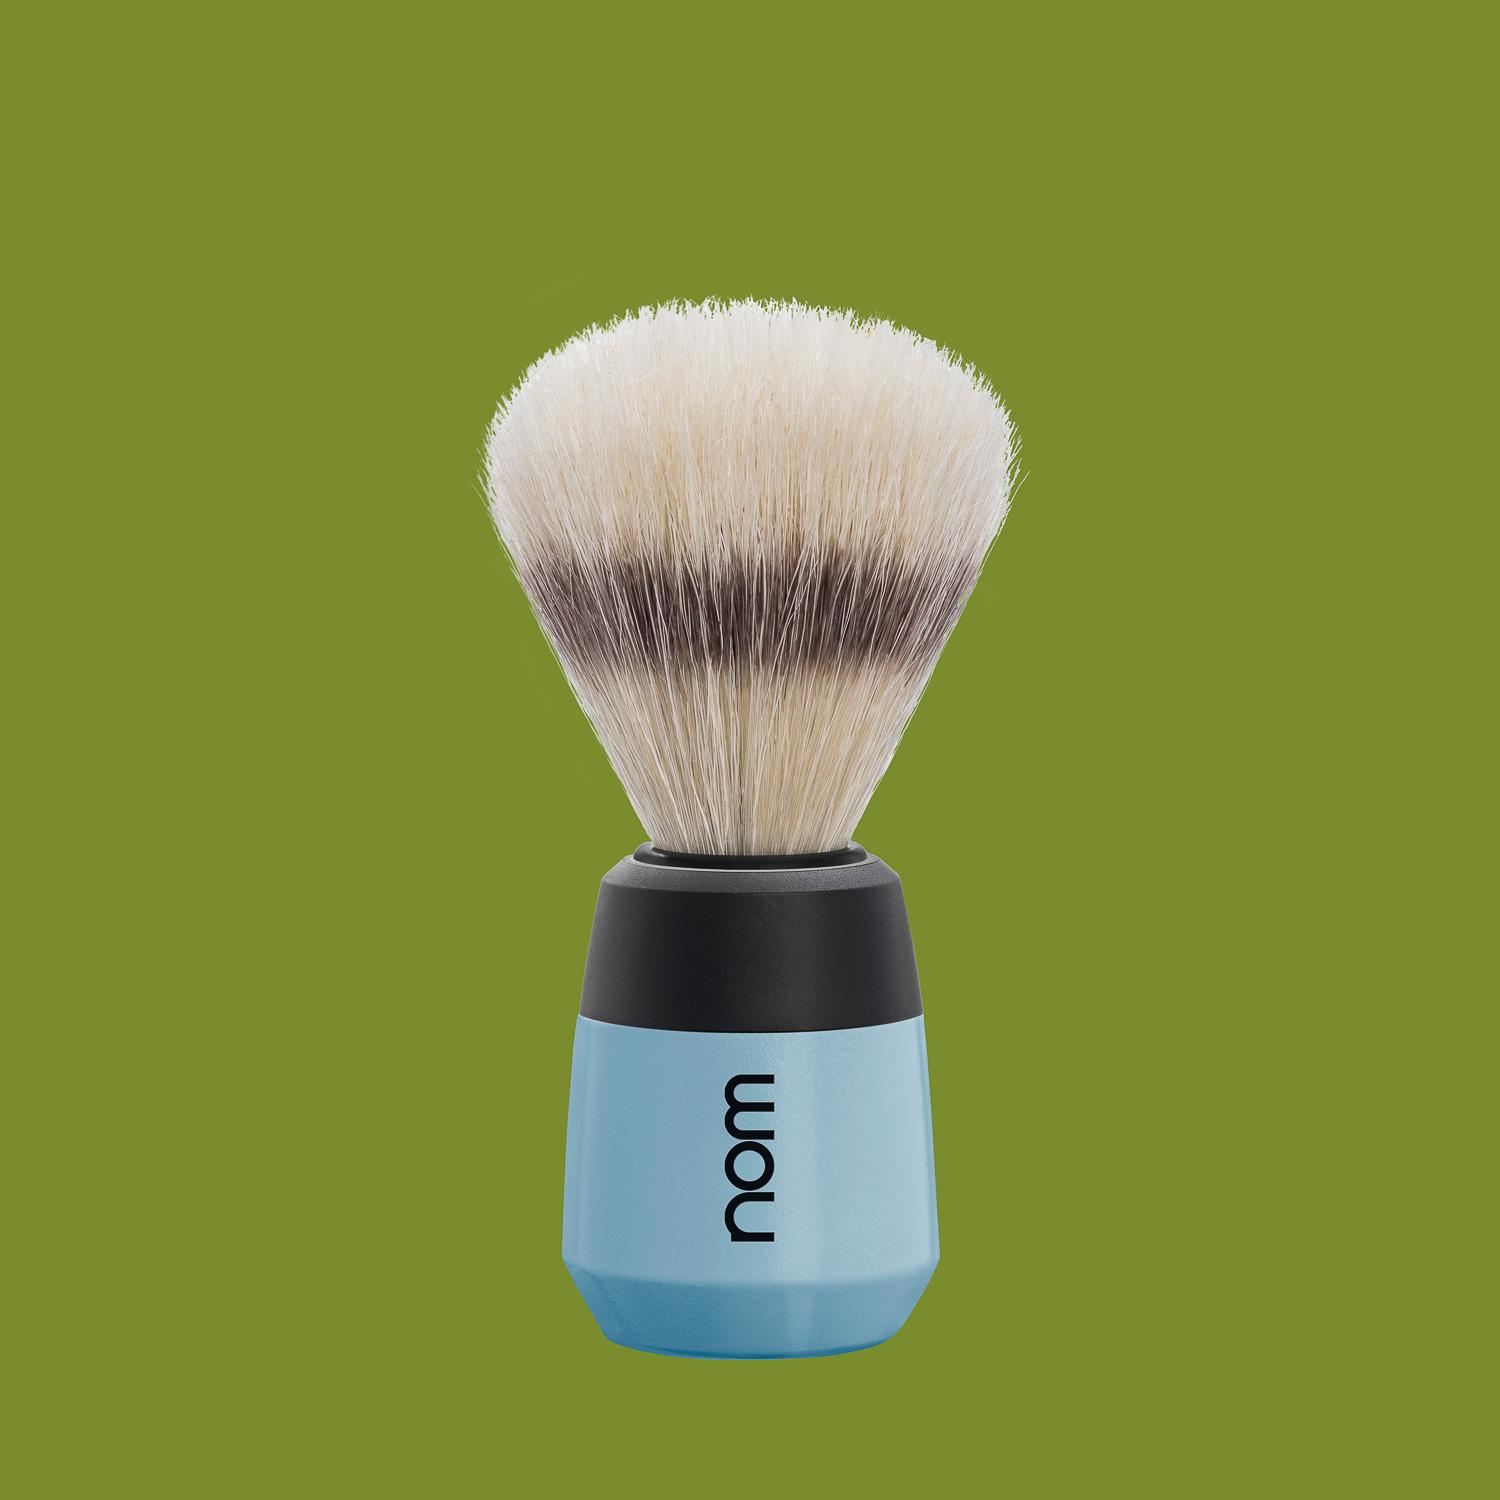 nom MAX, Fjord, Natural Bristle Shaving Brush